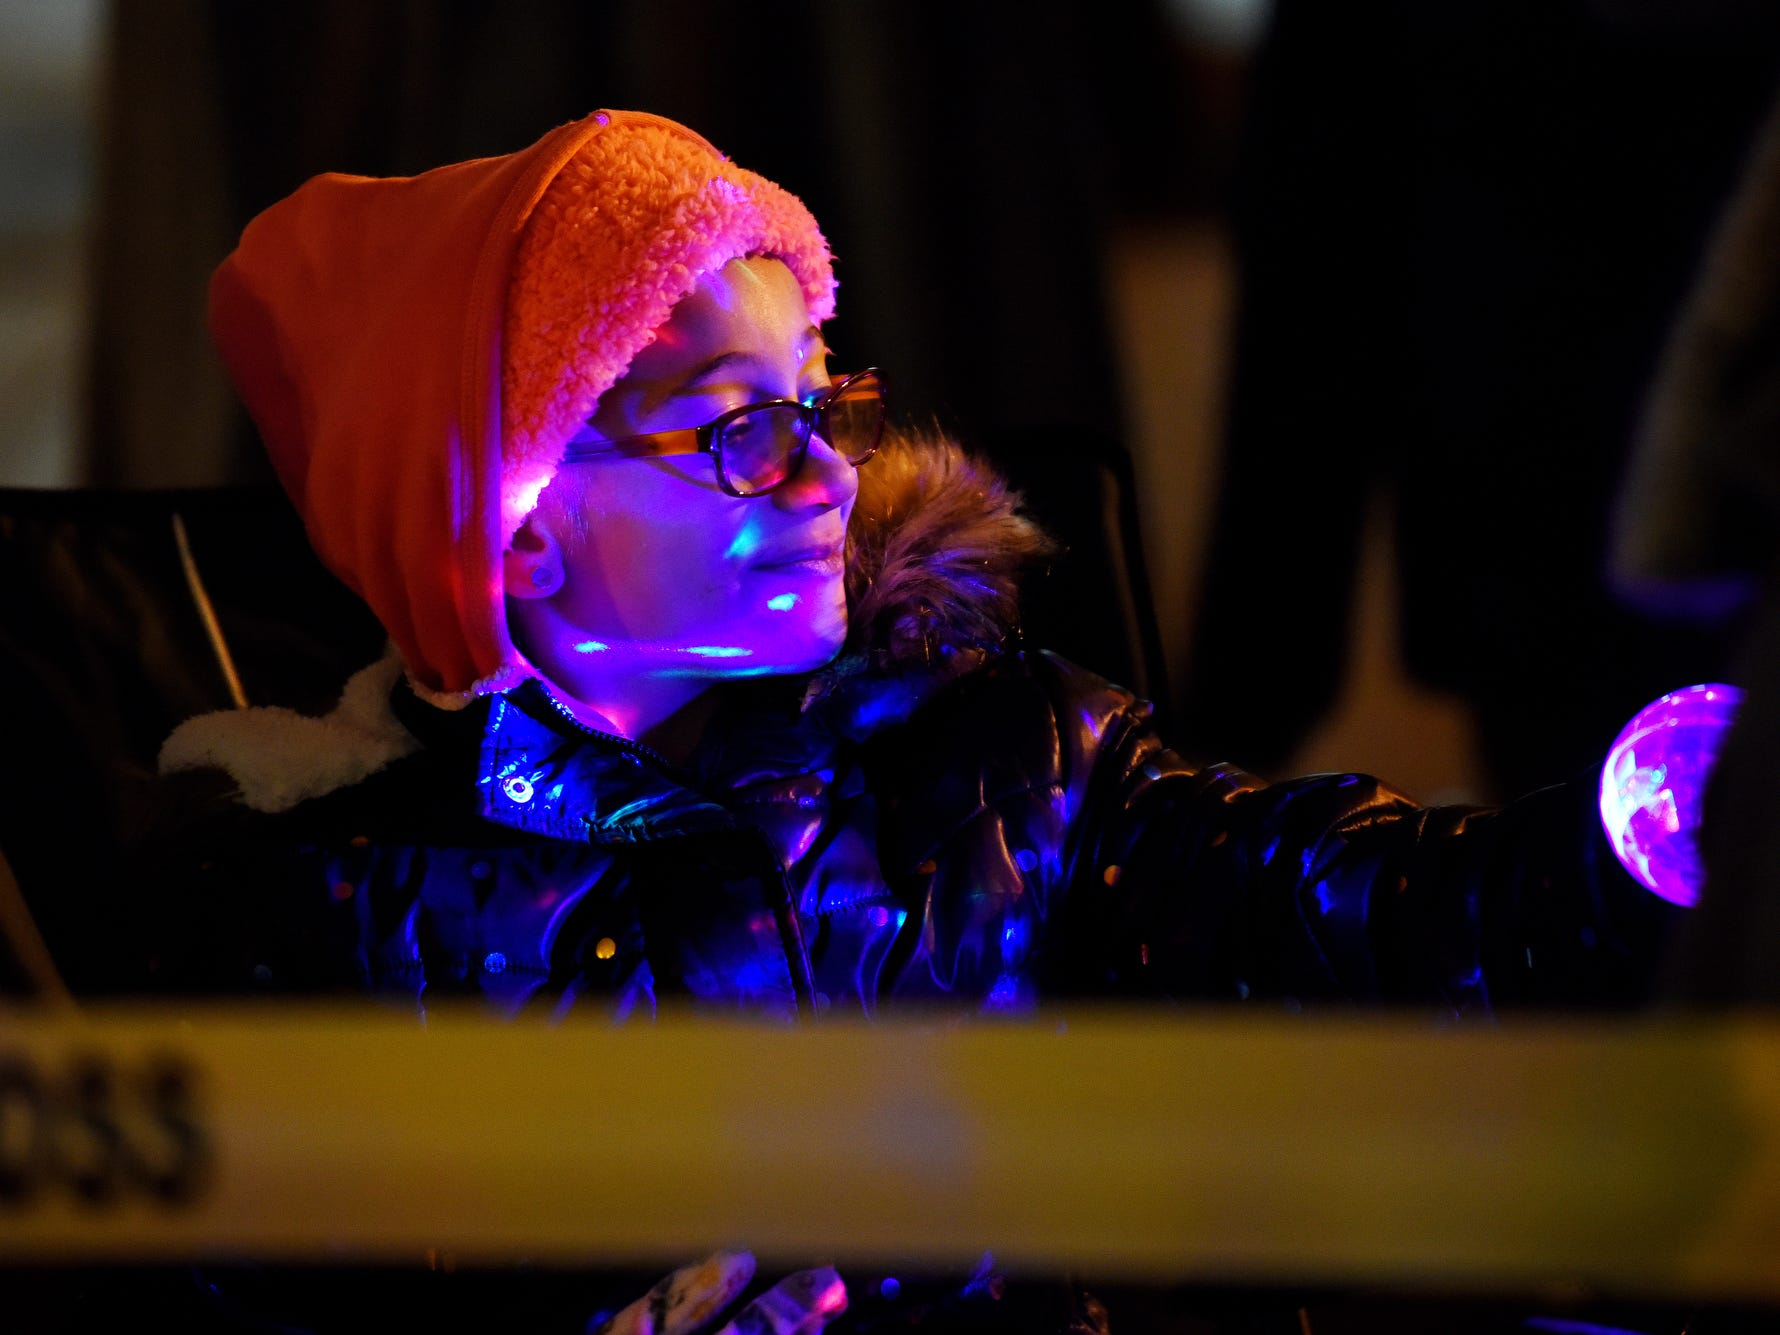 Makayla Stephens, 6, shines colored lights on her face as she watches the Electric Light Parade during the Silver Bells in the City on Friday, Nov. 16, 2018, in downtown Lansing.